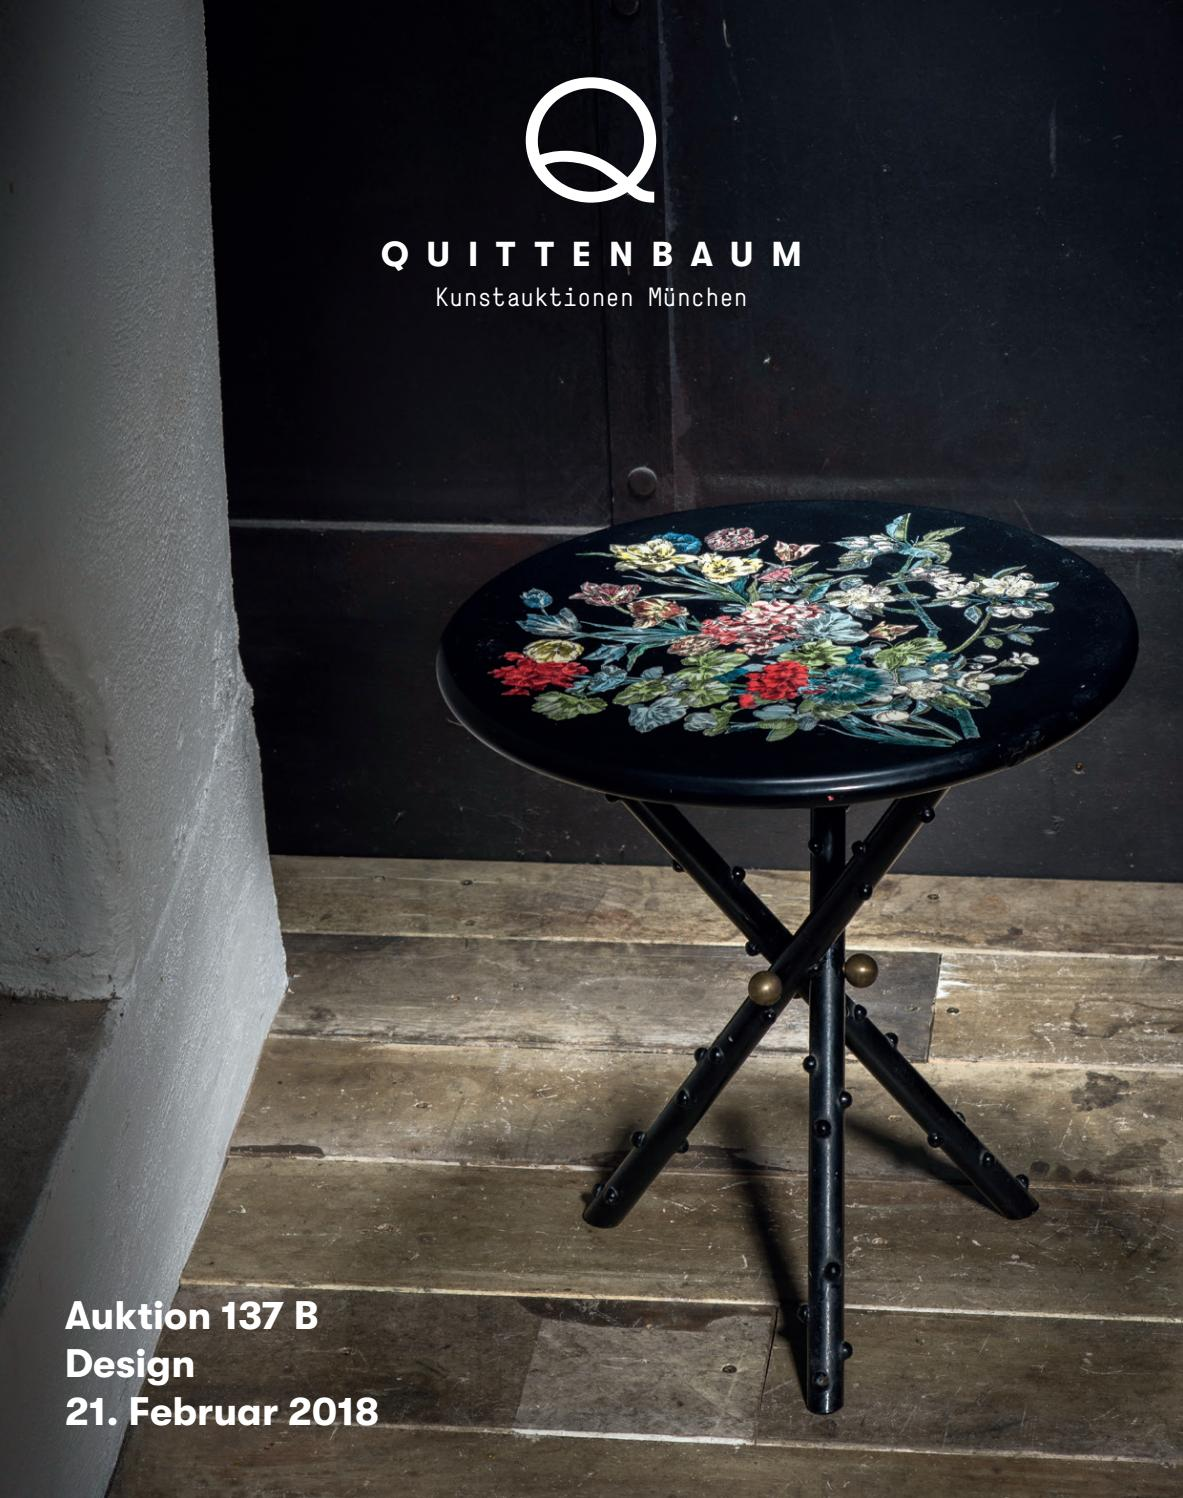 Auction 137 B Design Quittenbaum Art Auctions By Quittenbaum Kunstauktionen Gmbh Issuu